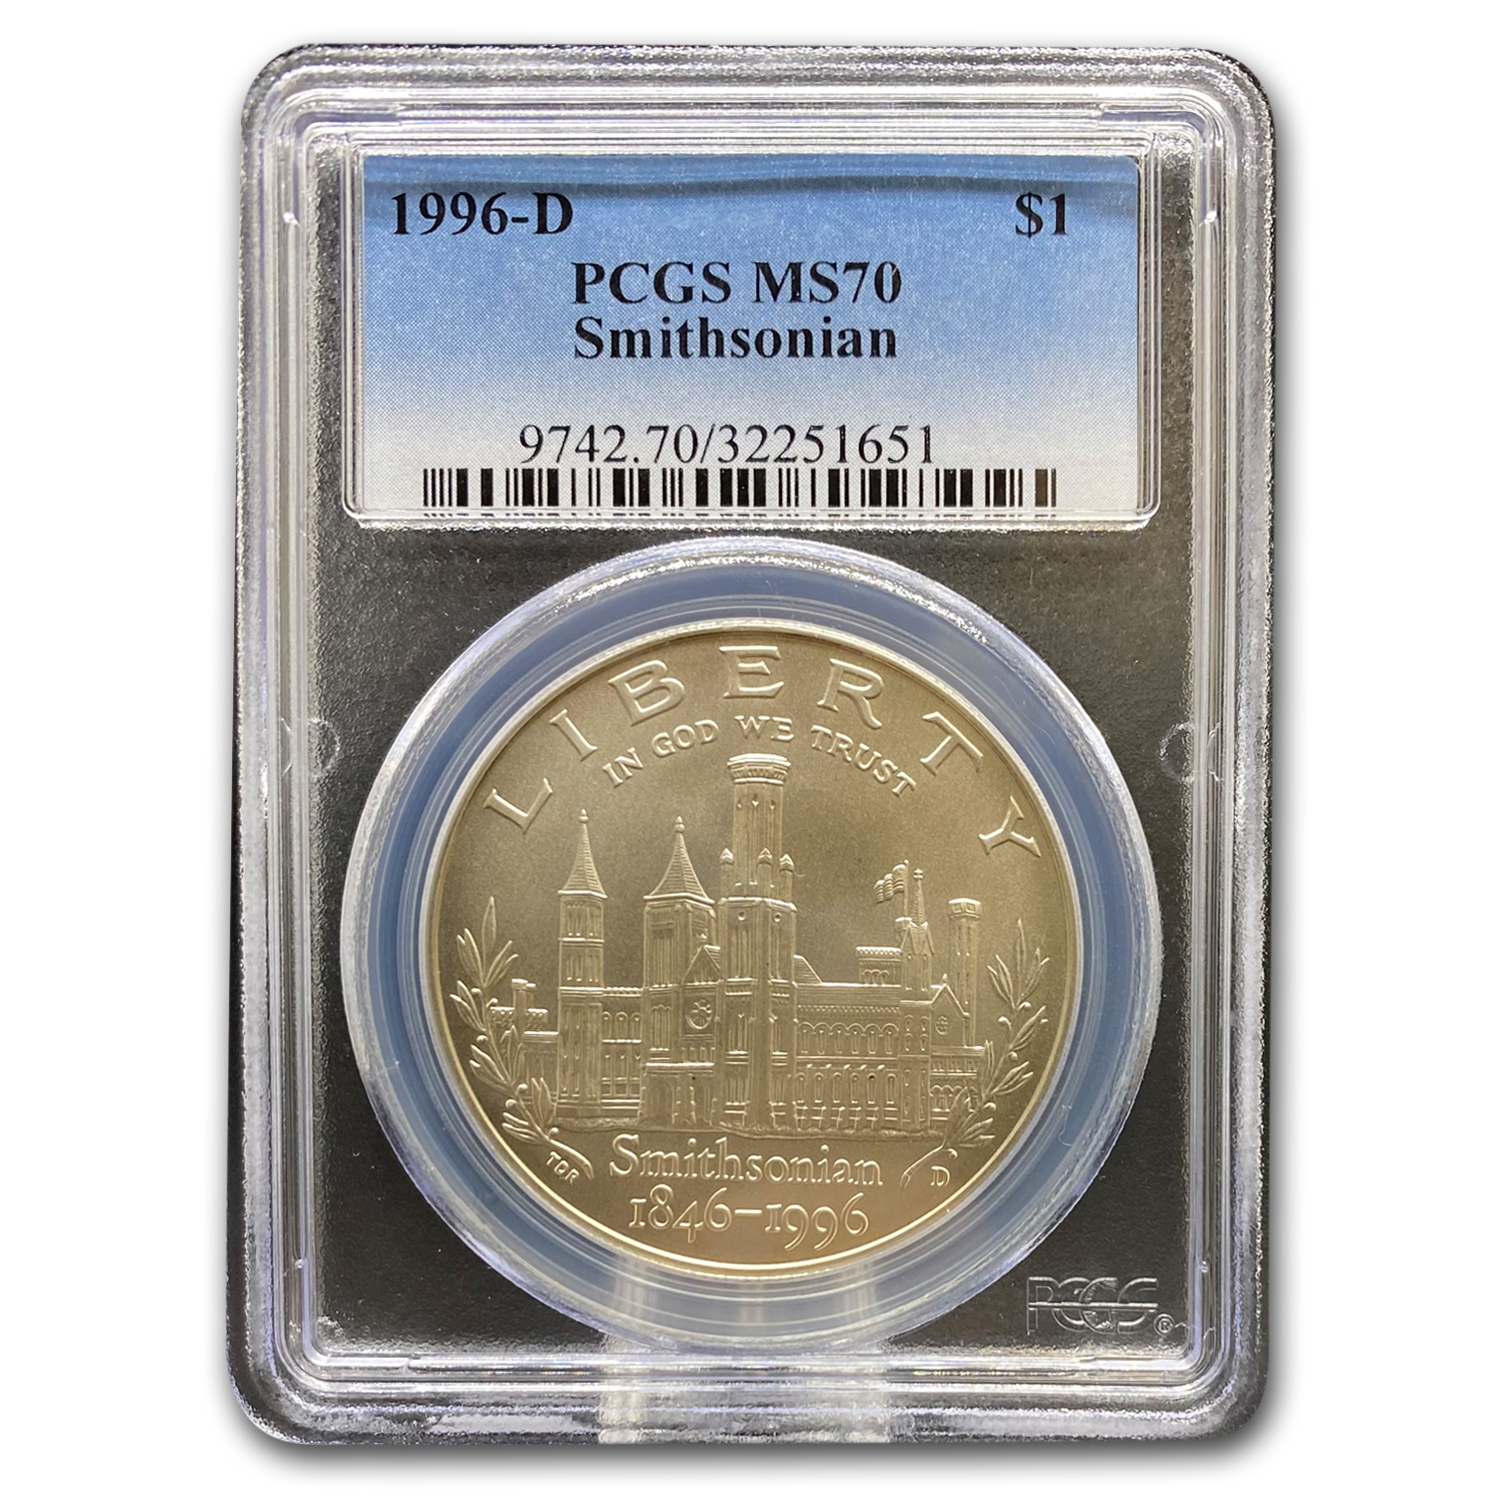 1996-D Smithsonian $1 Silver Commemorative MS-70 PCGS